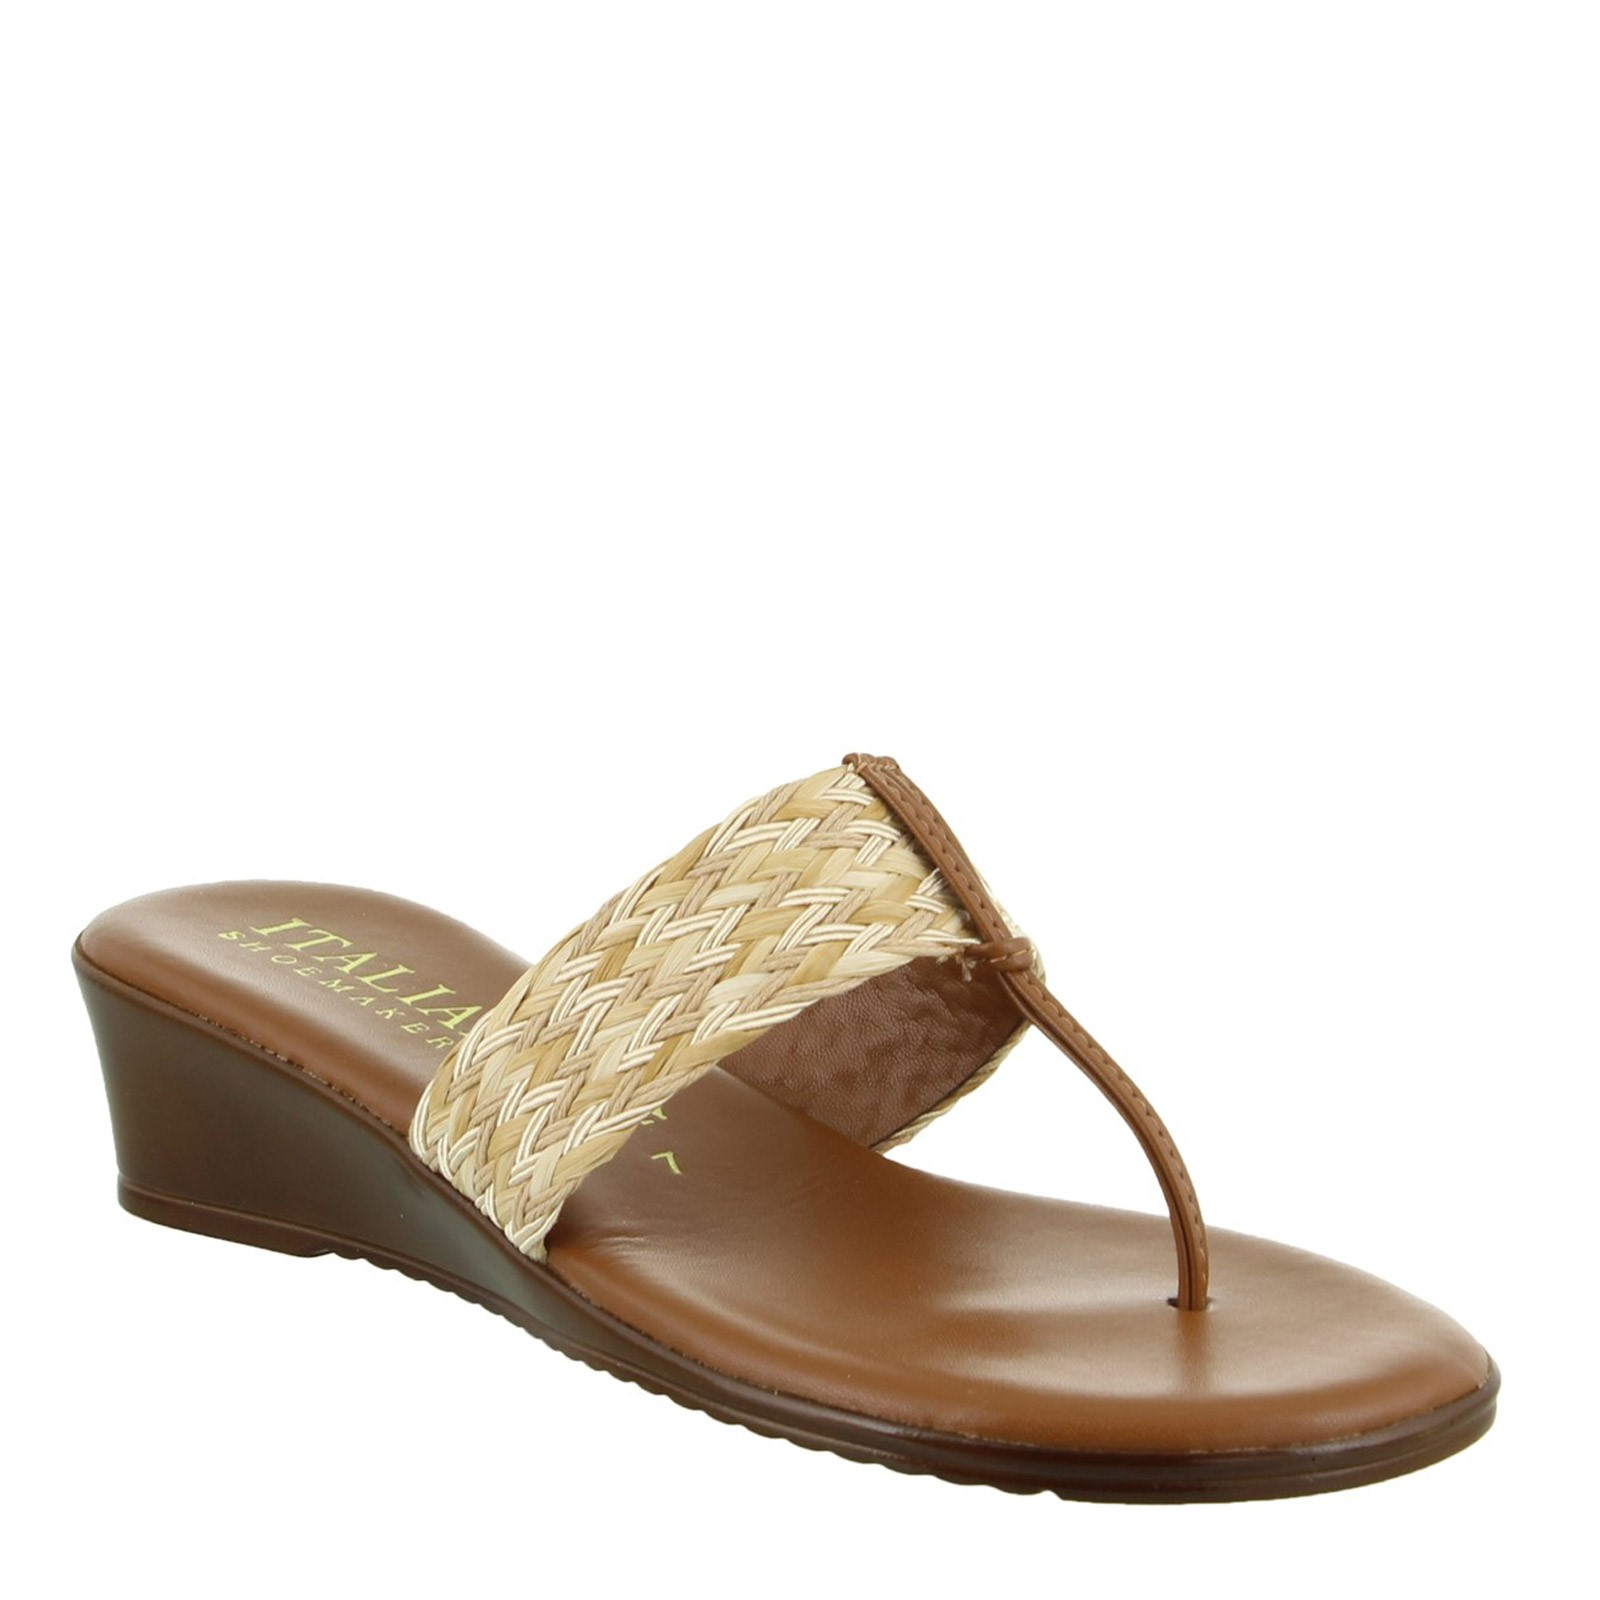 Women's Italian Shoemakers, Nikita Thong Sandal